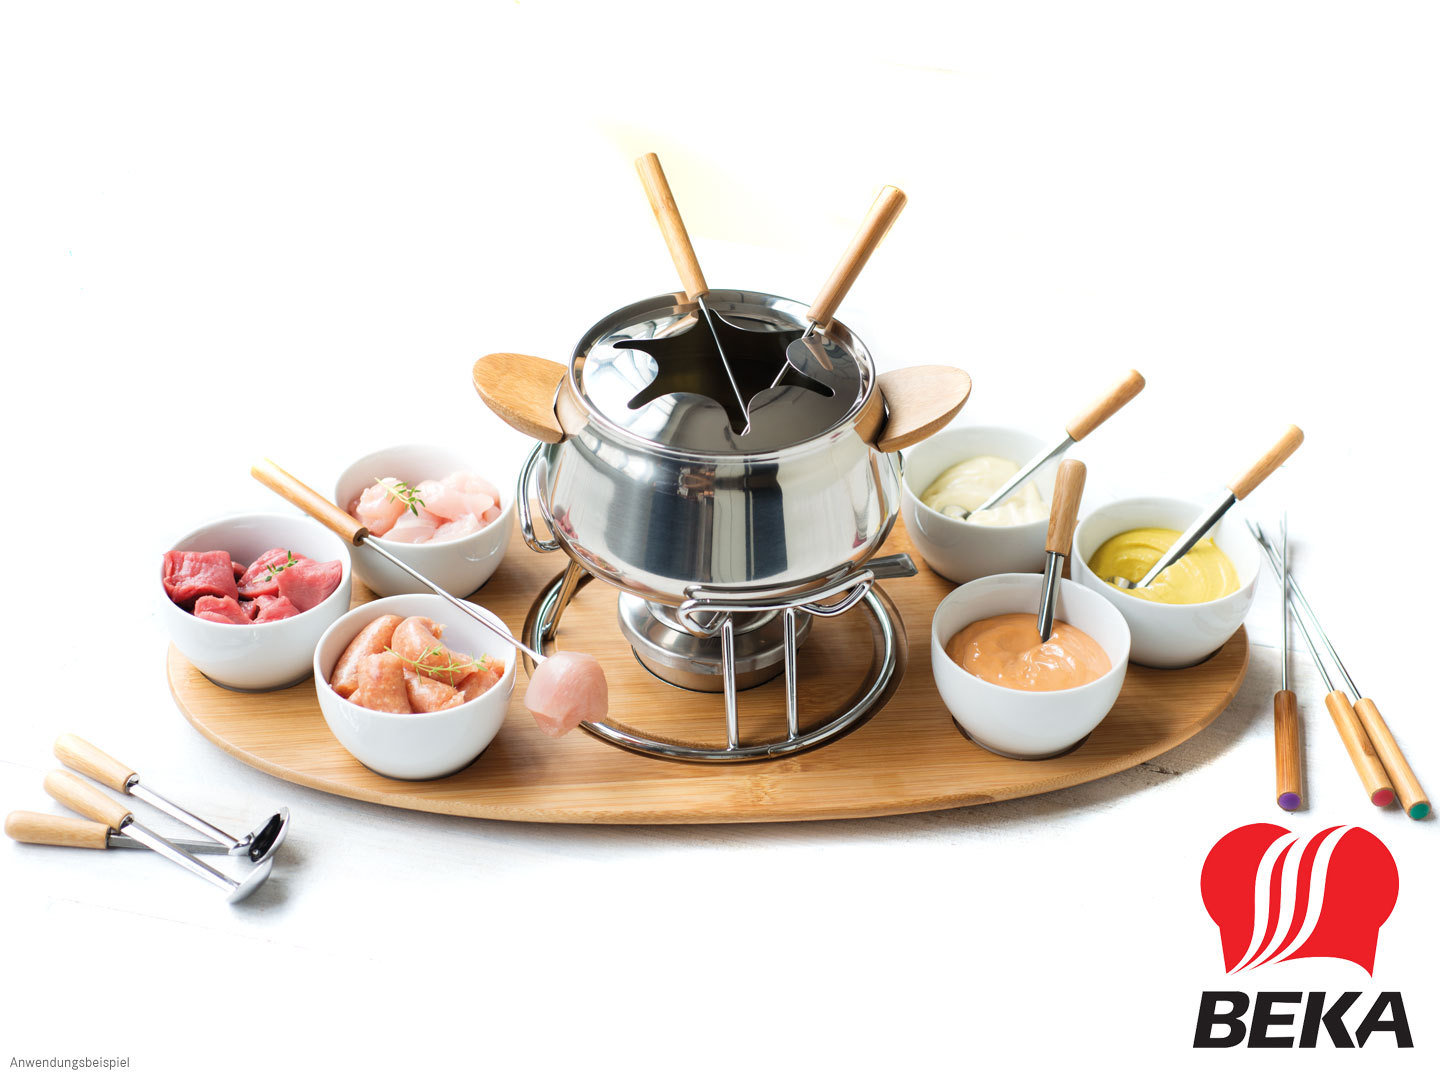 beka fondue set verona mit dip schalen online kaufen bei. Black Bedroom Furniture Sets. Home Design Ideas